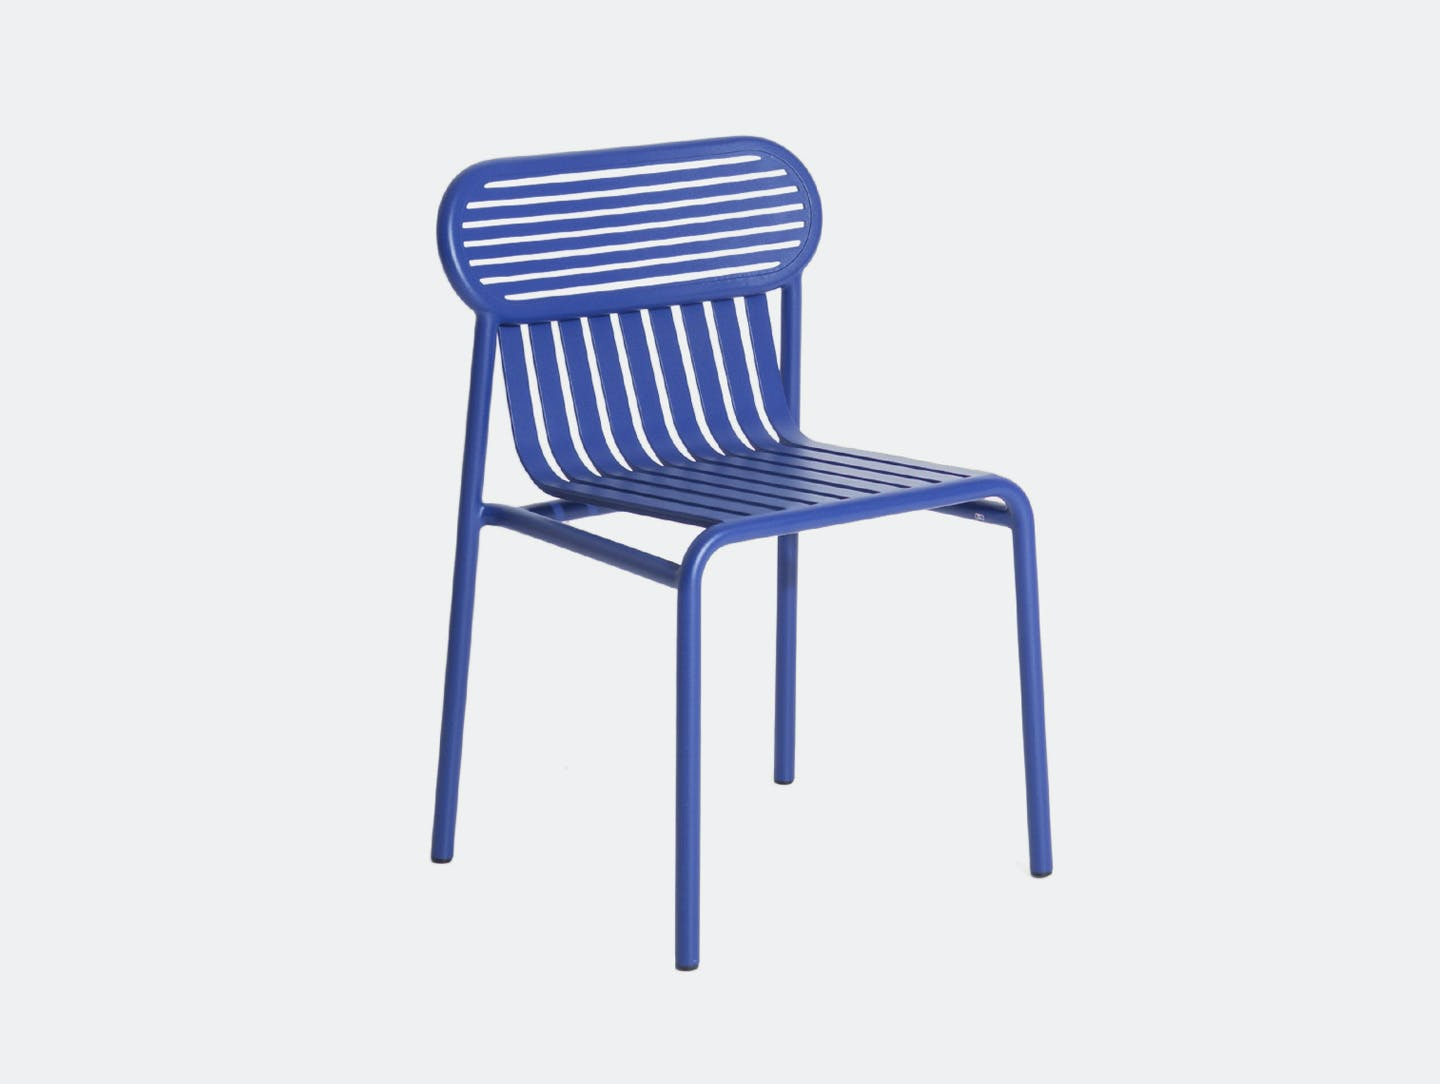 Petite Friture Week End Outdoor Side Chair blue Studio Brichet Ziegler